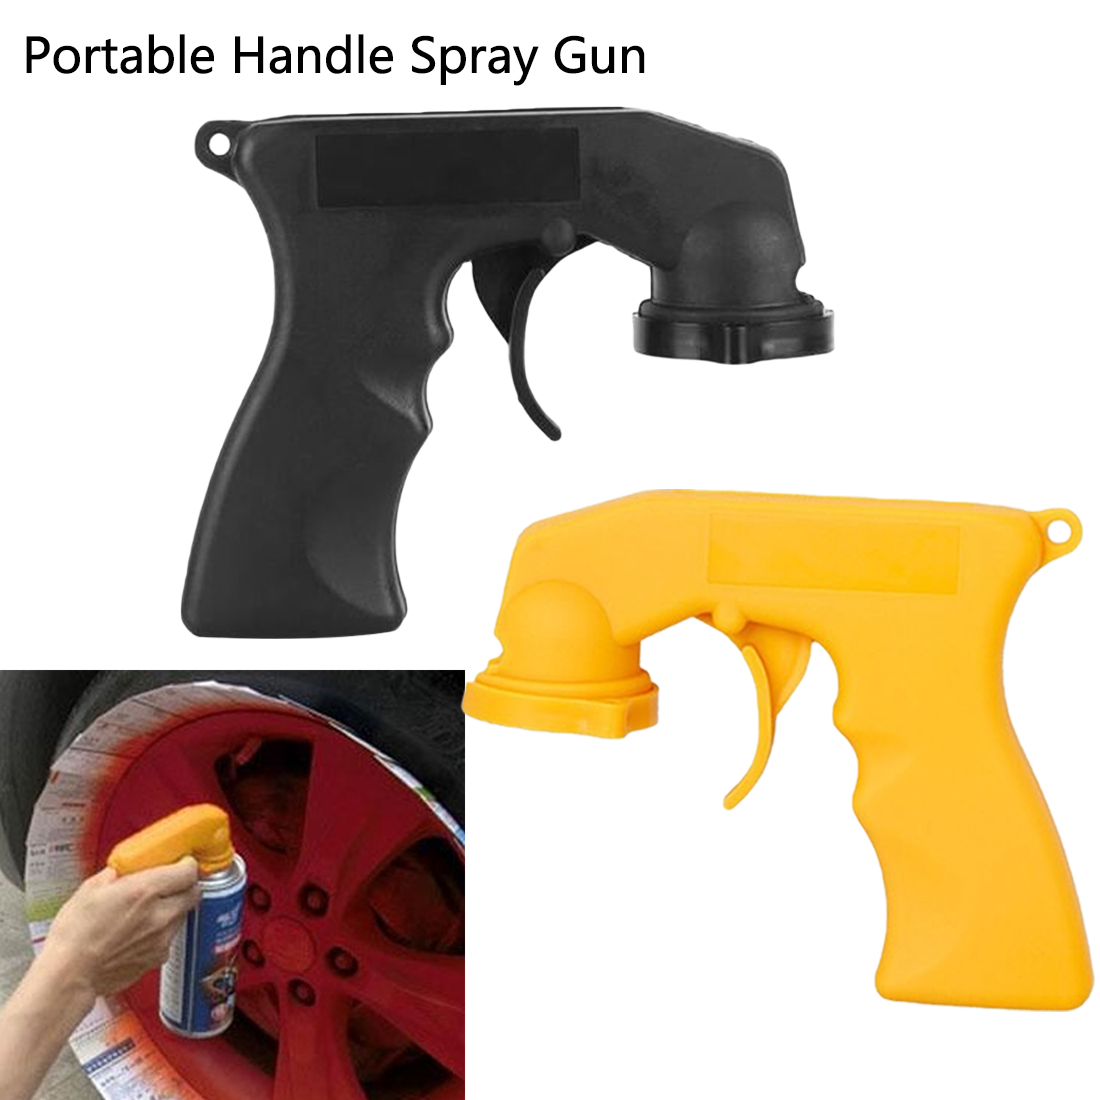 Portable Handle Spray Gun Aerosol Spray Can Handle with Full Grip Trigger for Painting Hand Tool SetPortable Handle Spray Gun Aerosol Spray Can Handle with Full Grip Trigger for Painting Hand Tool Set